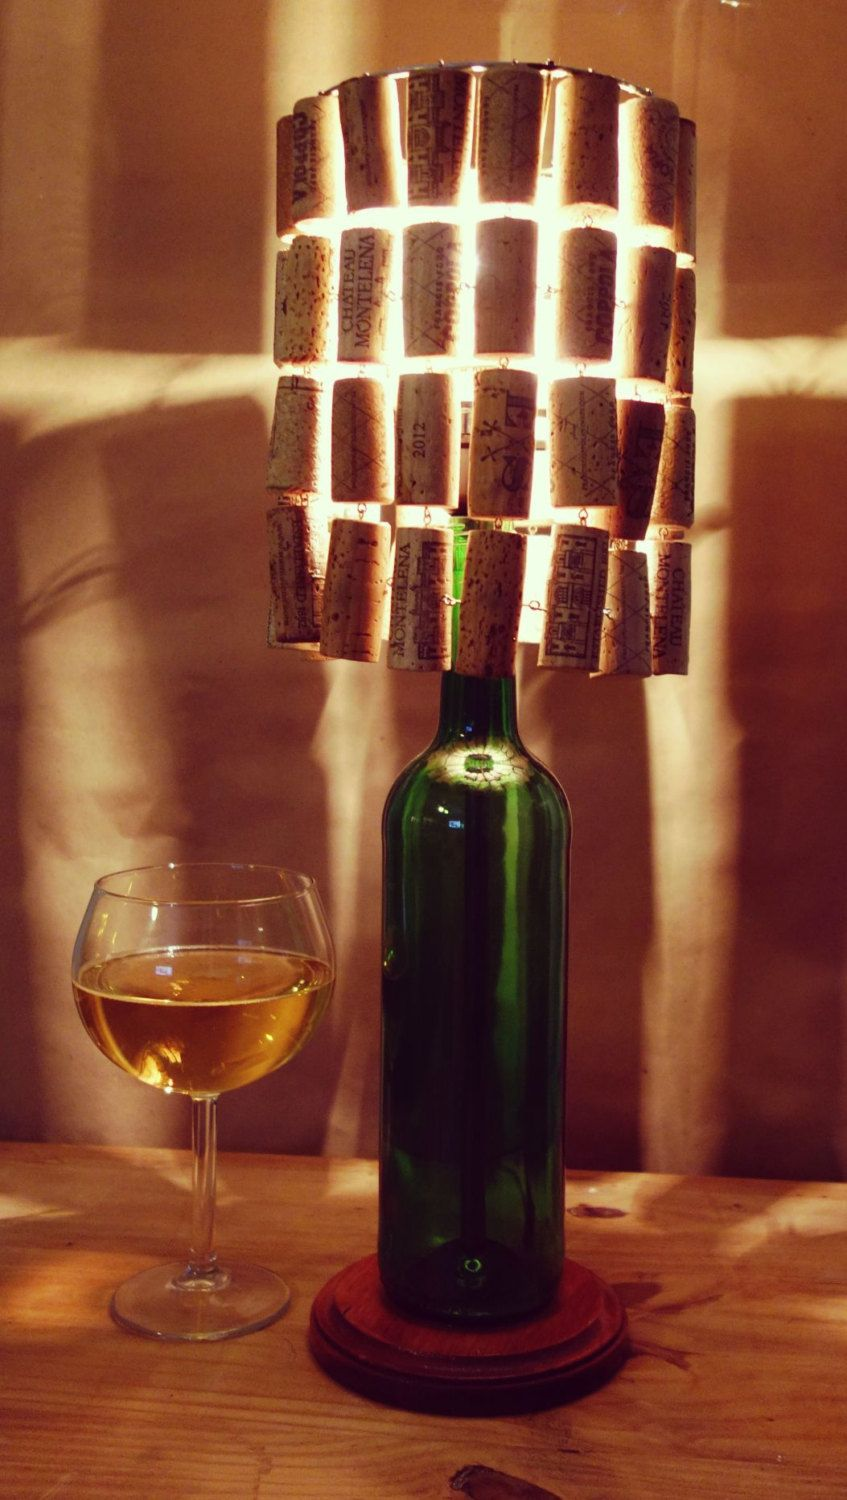 Wine bottle lamp with wine cork lamp shade llantas y acero wine bottle lamp with wine cork lamp shade de licensetocraft en etsy https aloadofball Images